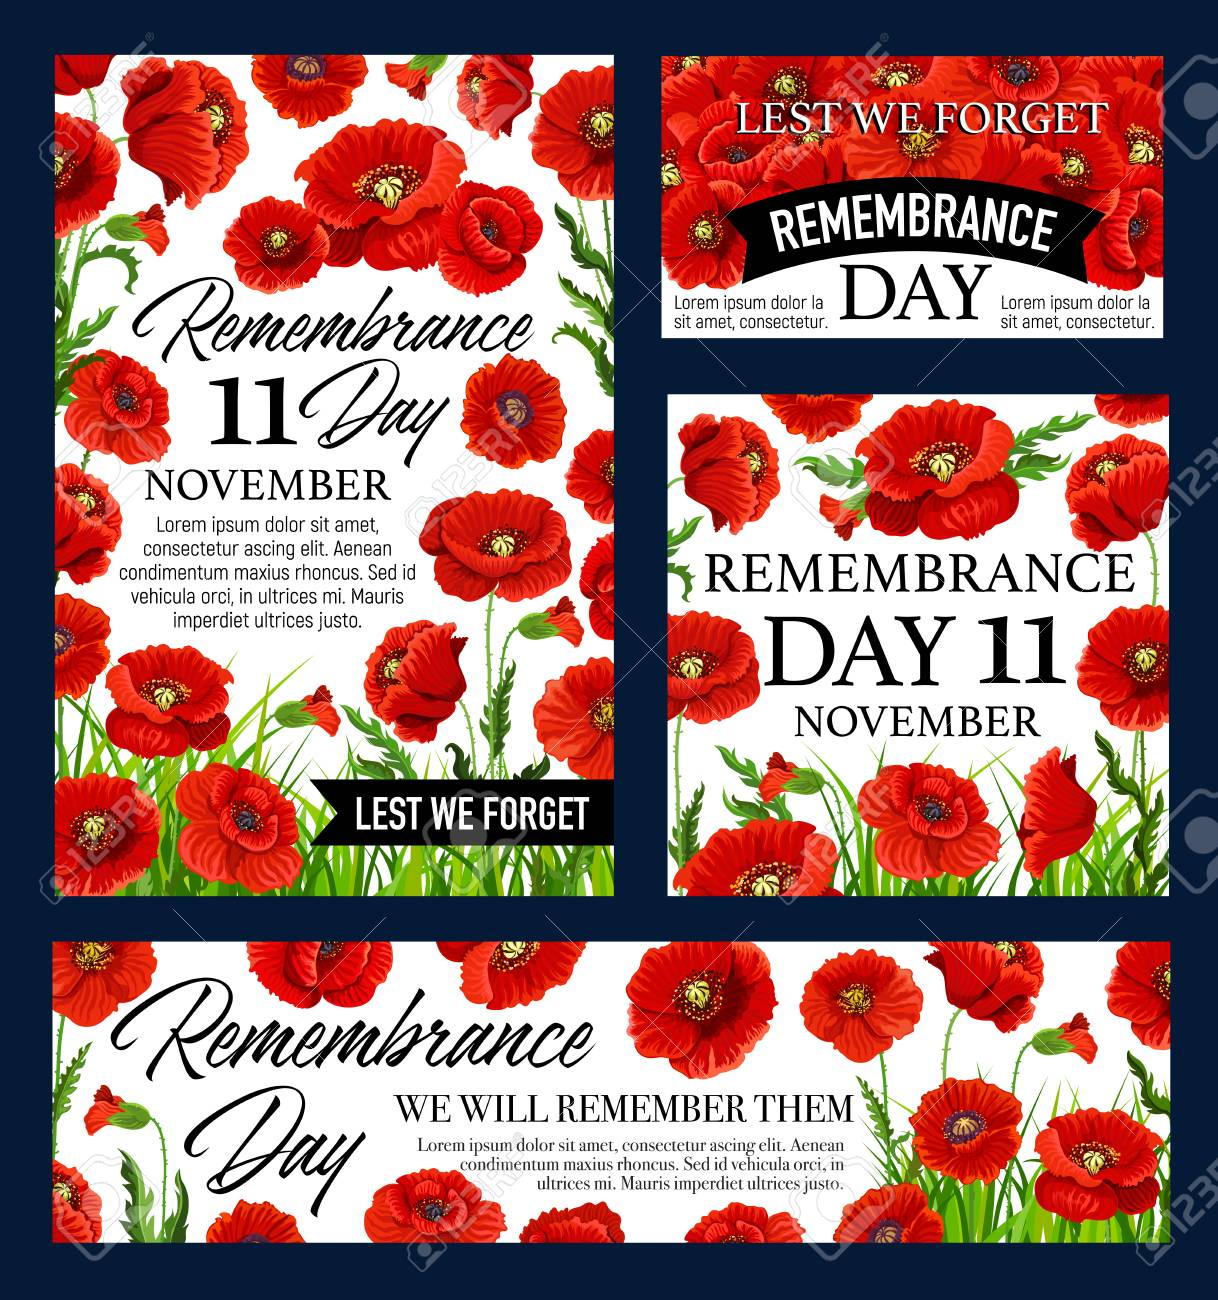 Red poppy flower remembrance day memorial banner royalty free red poppy flower remembrance day memorial banner stock vector 105483947 mightylinksfo